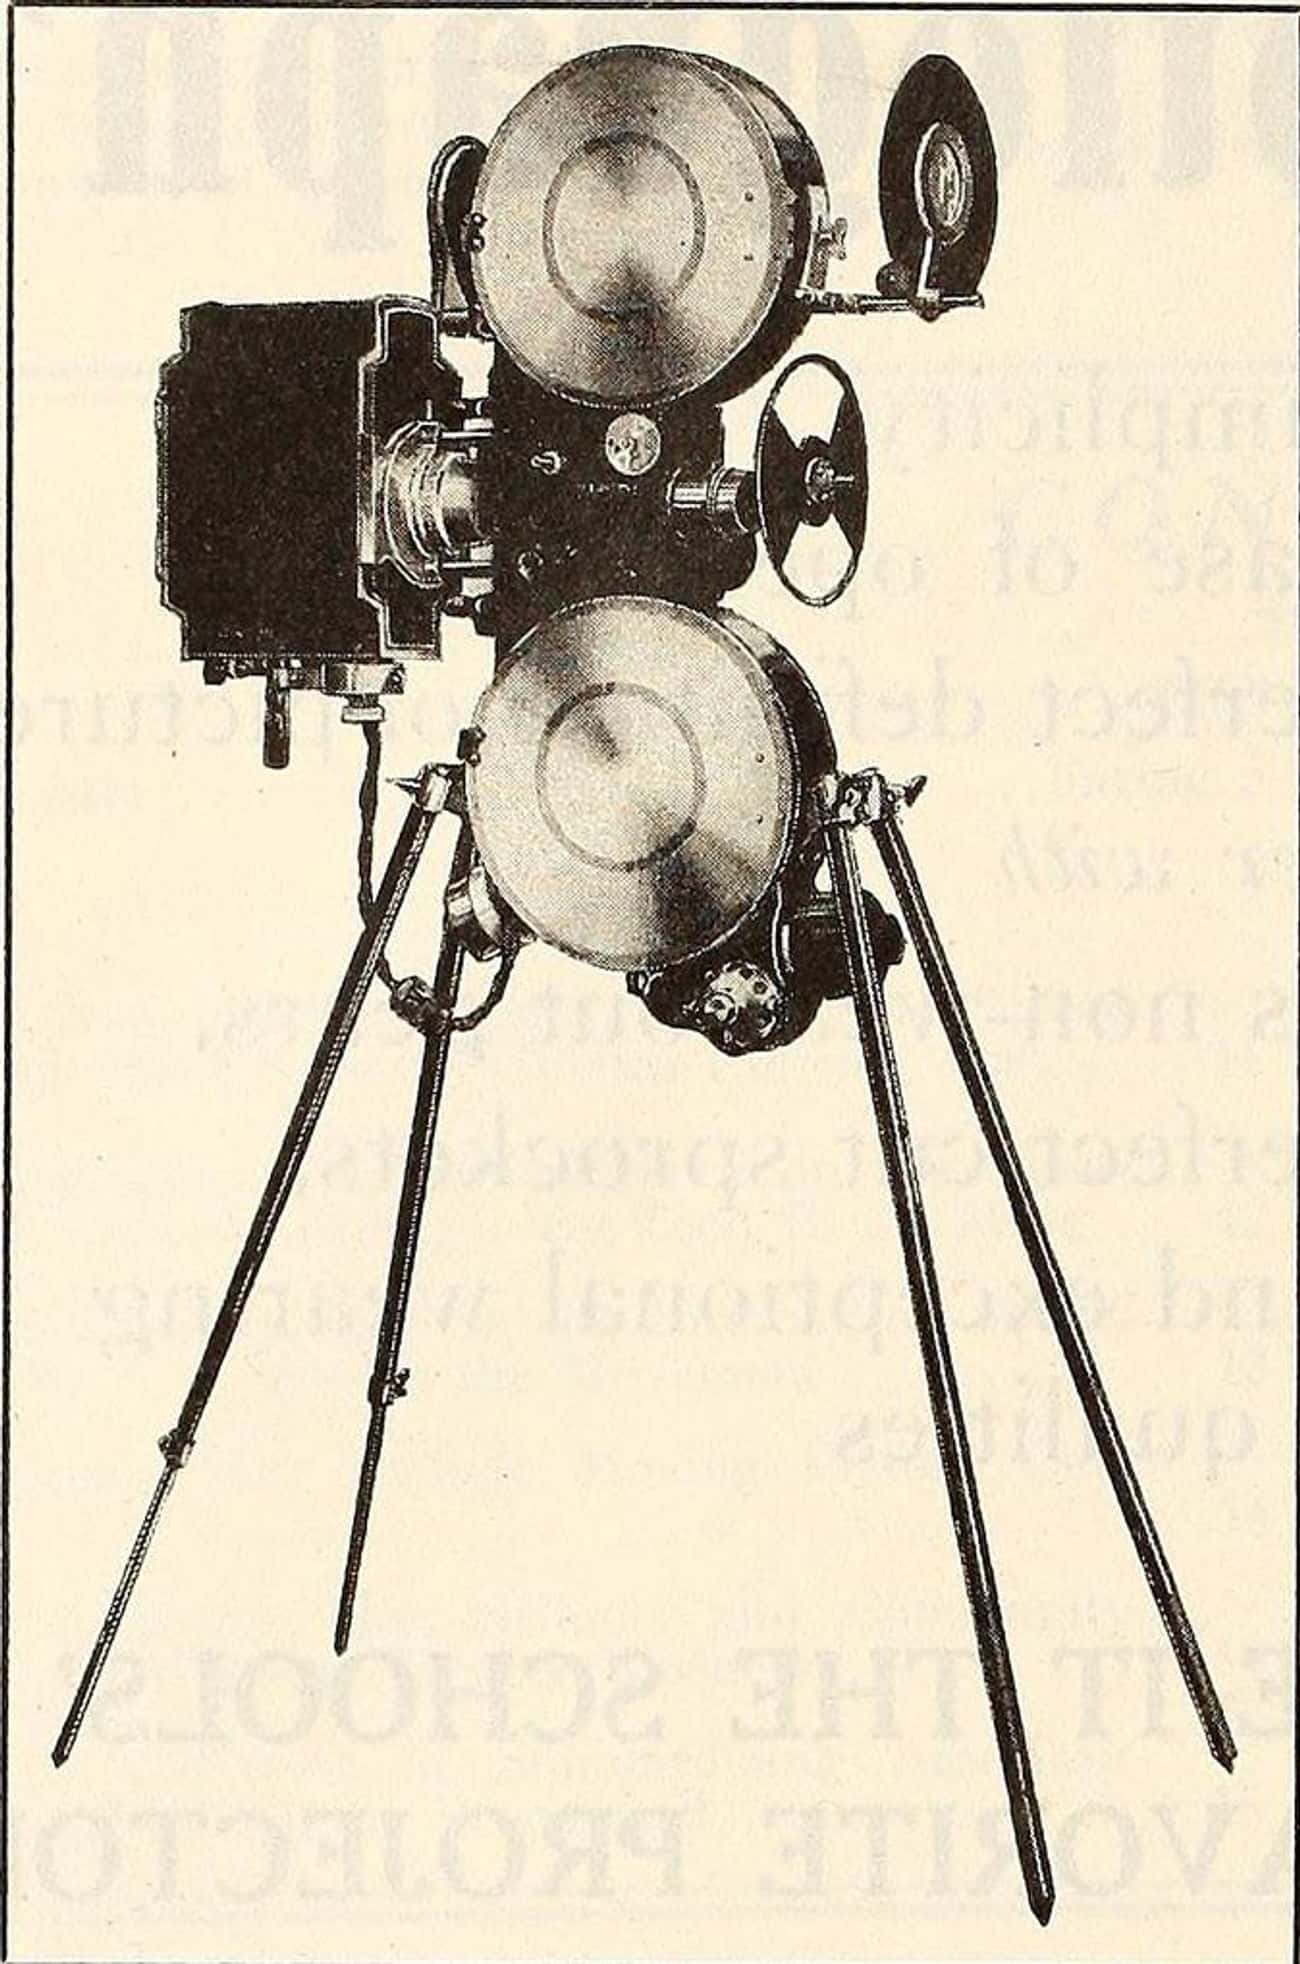 Movie Cameras Weren't Something Edison Knew A Lot About But He Took Credit For Them Anyway